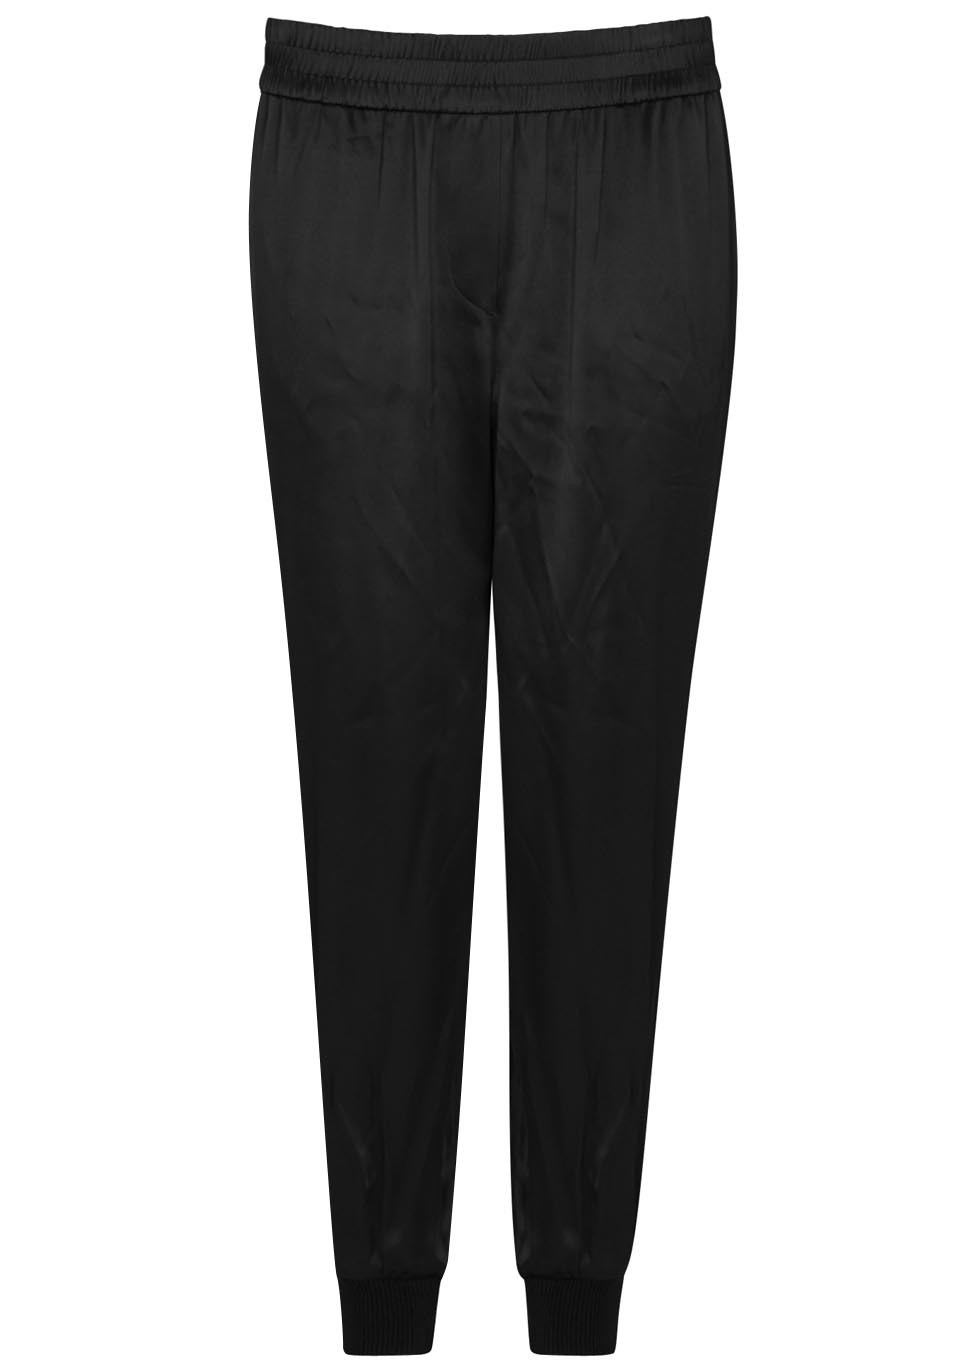 Black Satin Jogging Trousers - length: standard; pattern: plain; style: tracksuit pants; waist: mid/regular rise; predominant colour: black; occasions: casual, activity; fibres: viscose/rayon - 100%; texture group: structured shiny - satin/tafetta/silk etc.; fit: tapered; pattern type: fabric; season: s/s 2016